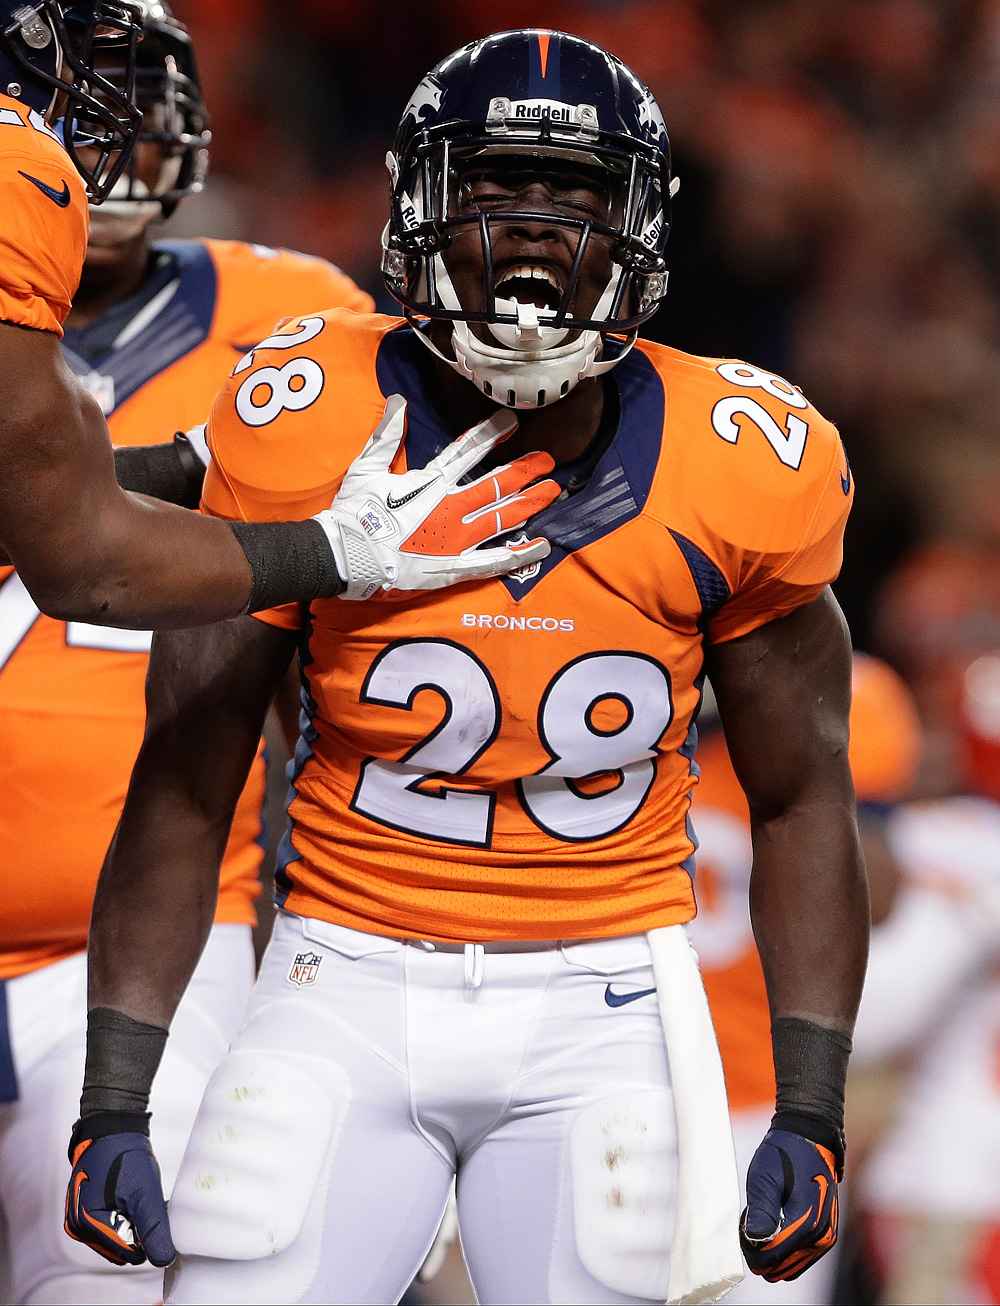 2014 Fantasy Football Rankings: Top 20 RBs